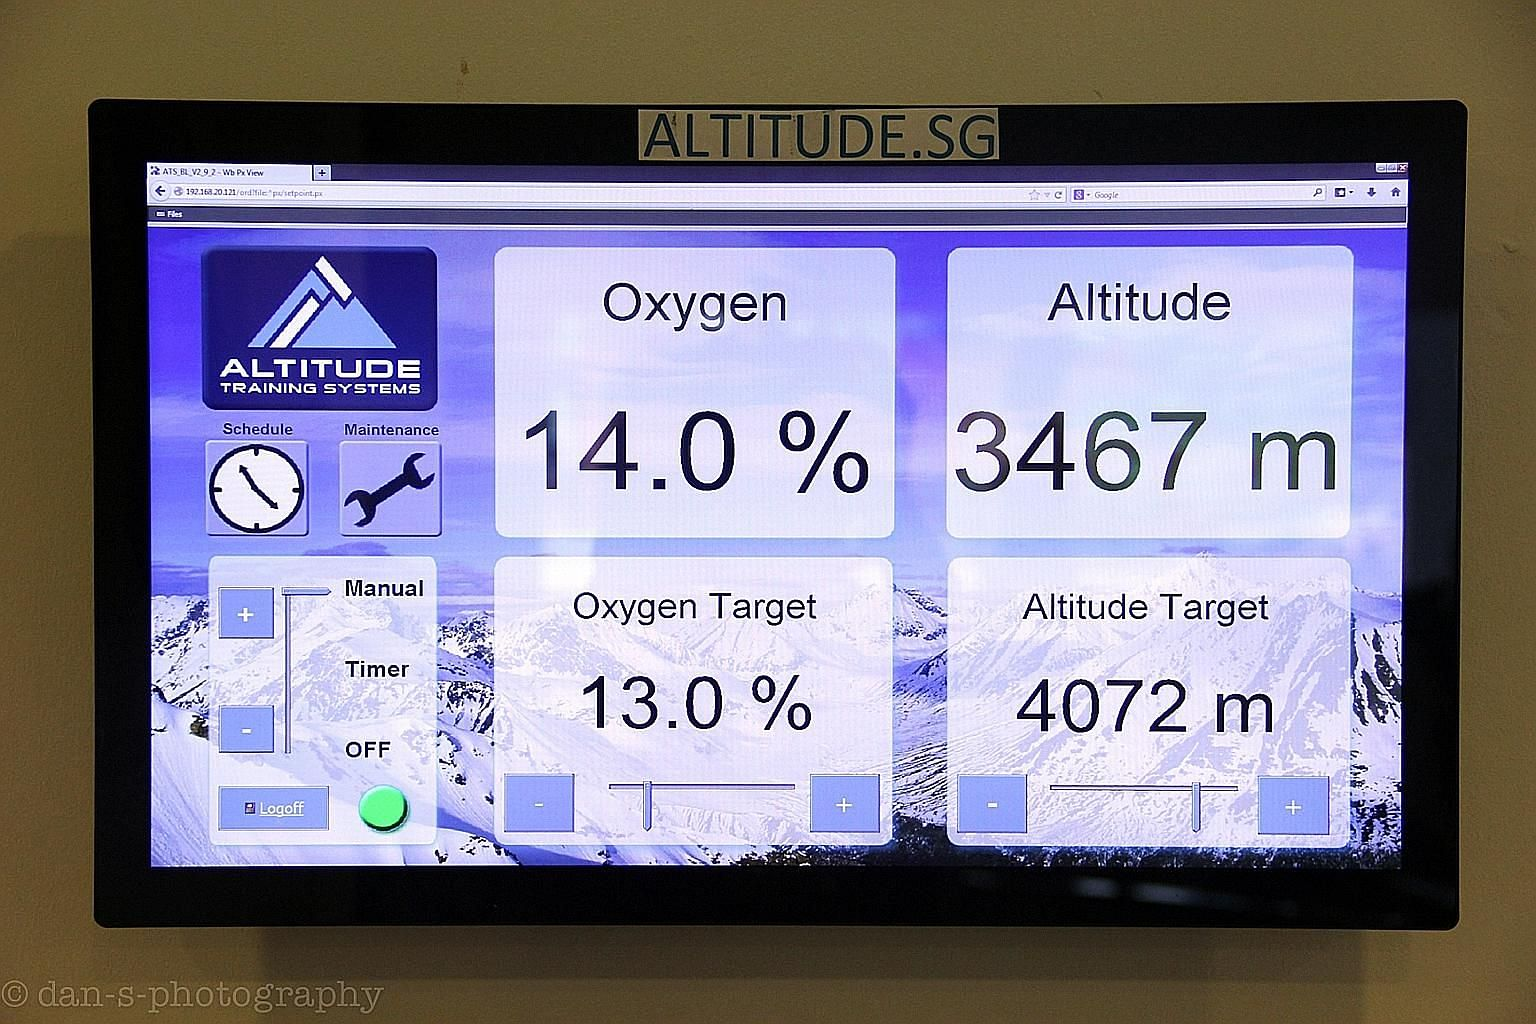 The live high, train low method is often practised in simulated hypoxic environments like the Altitude House at the Singapore Sports Institute.